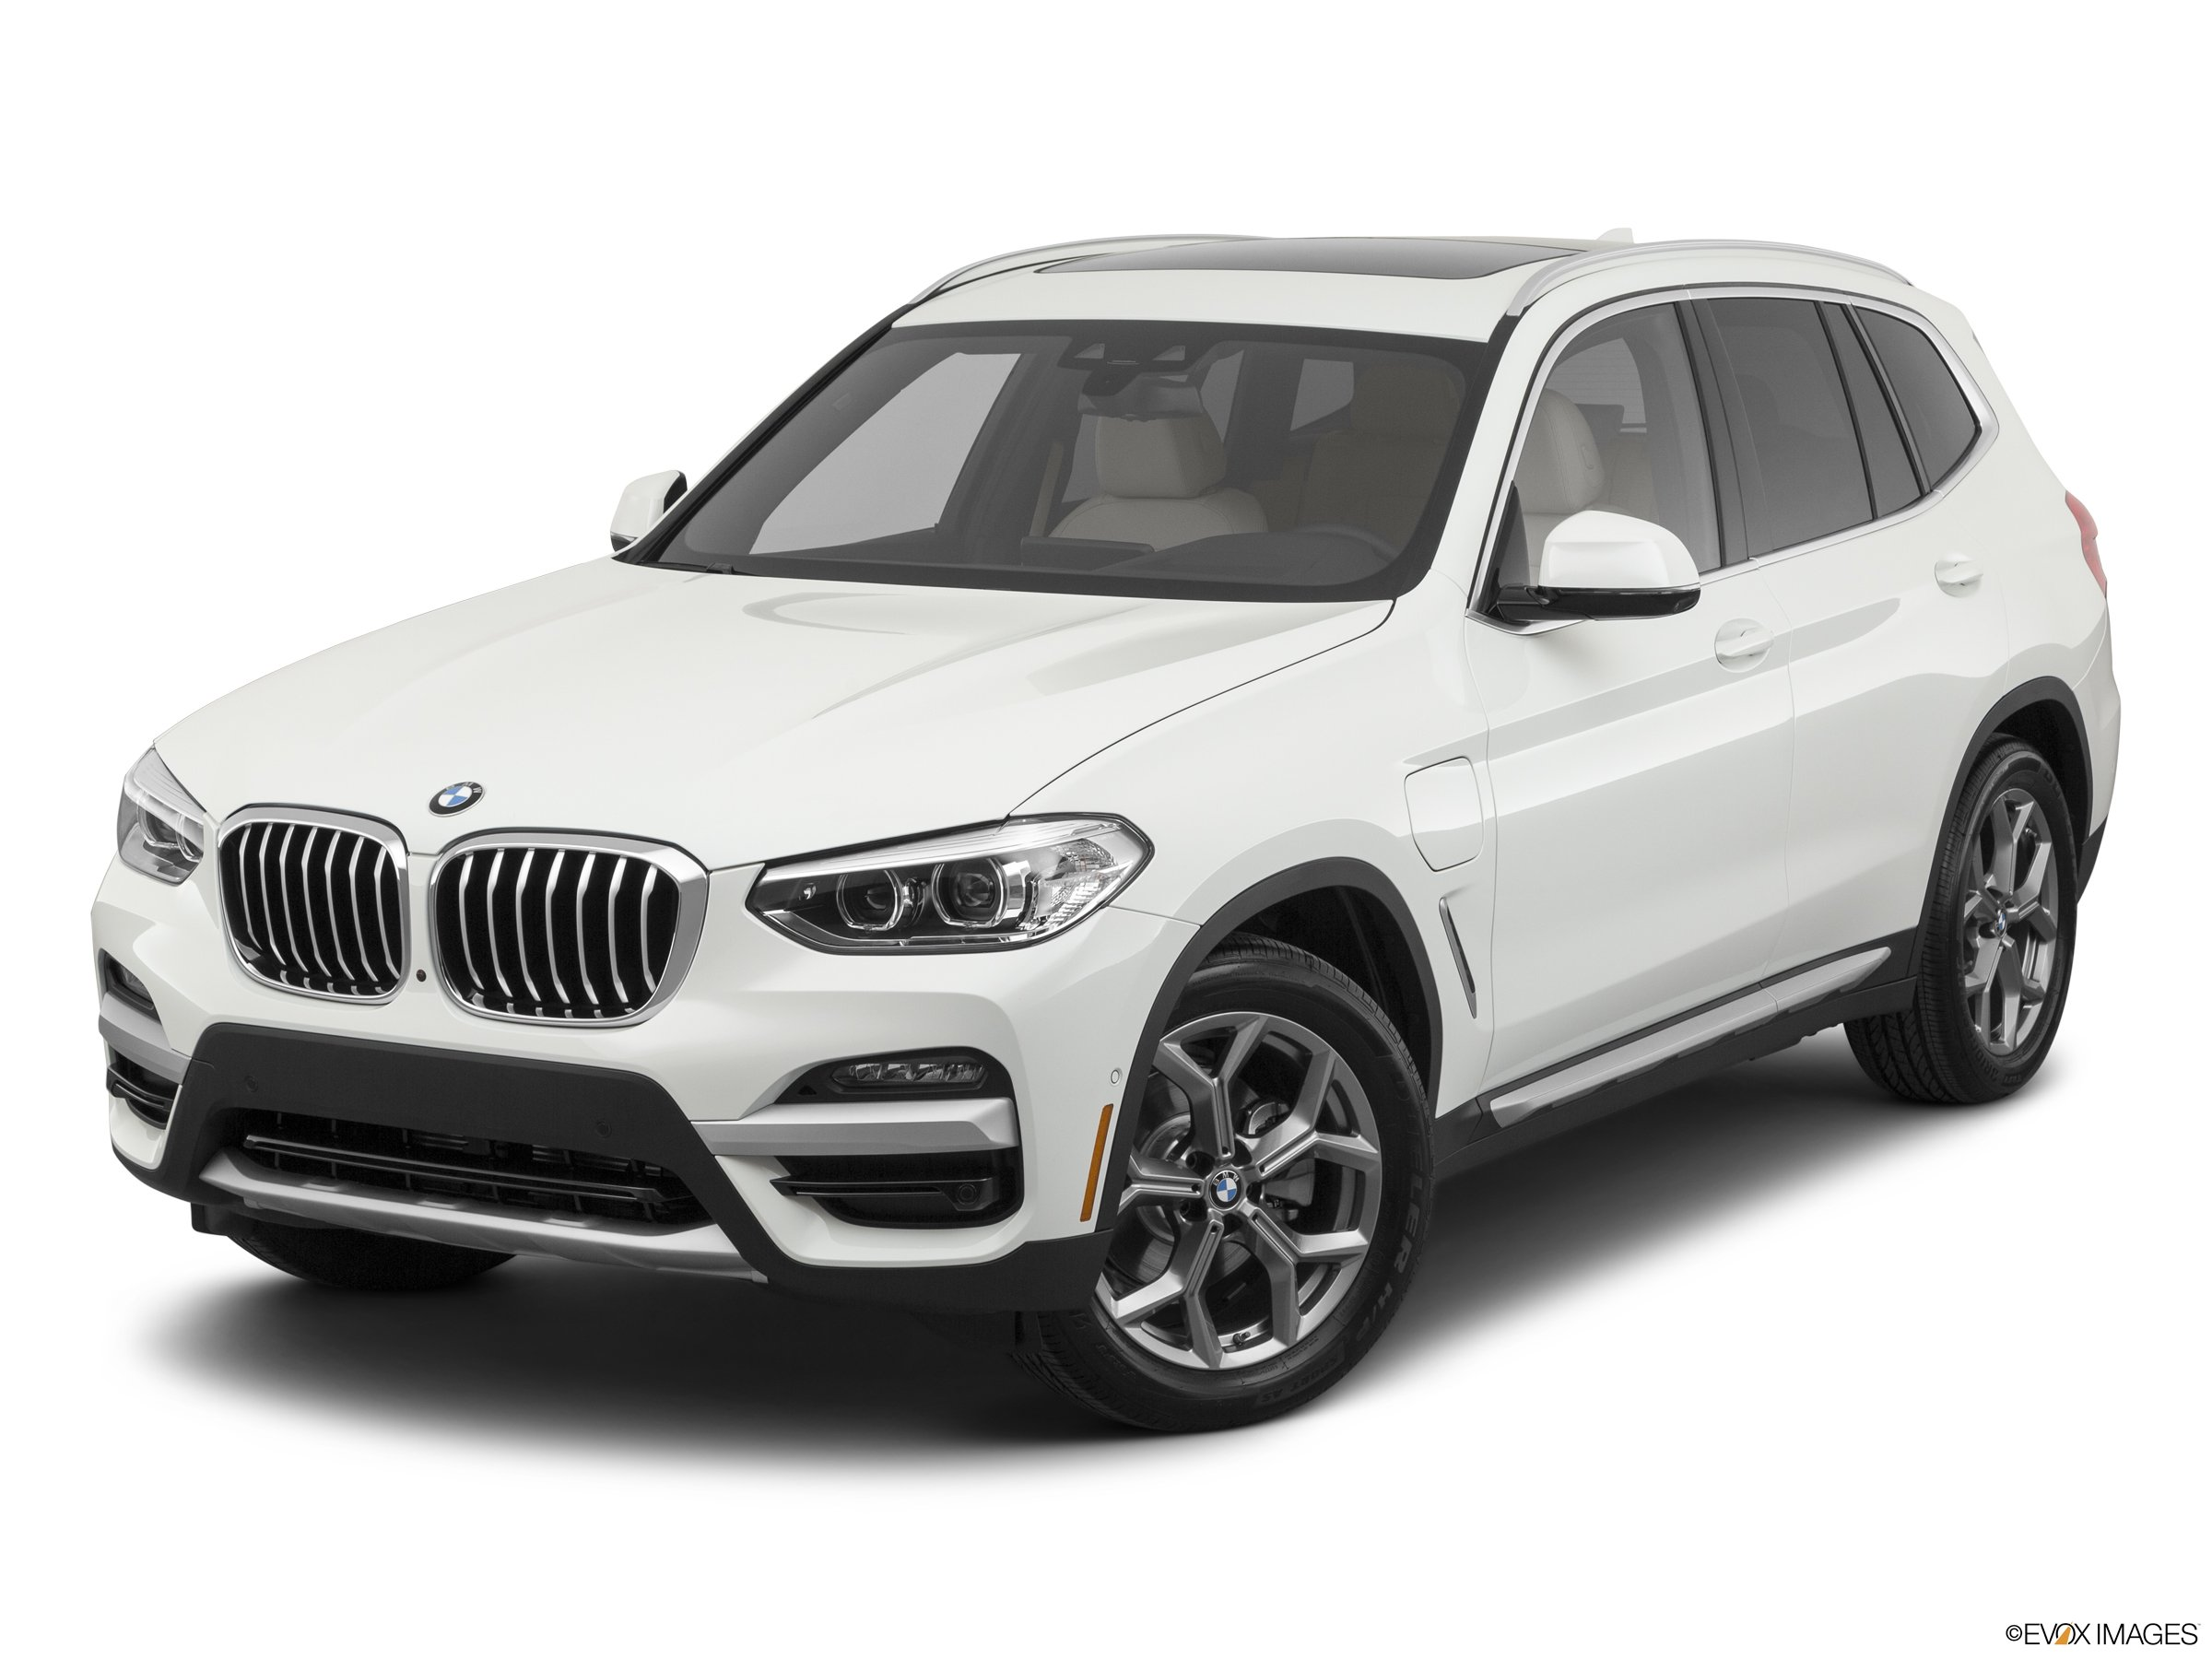 2020 BMW X3 xDrive30e AWD CUV